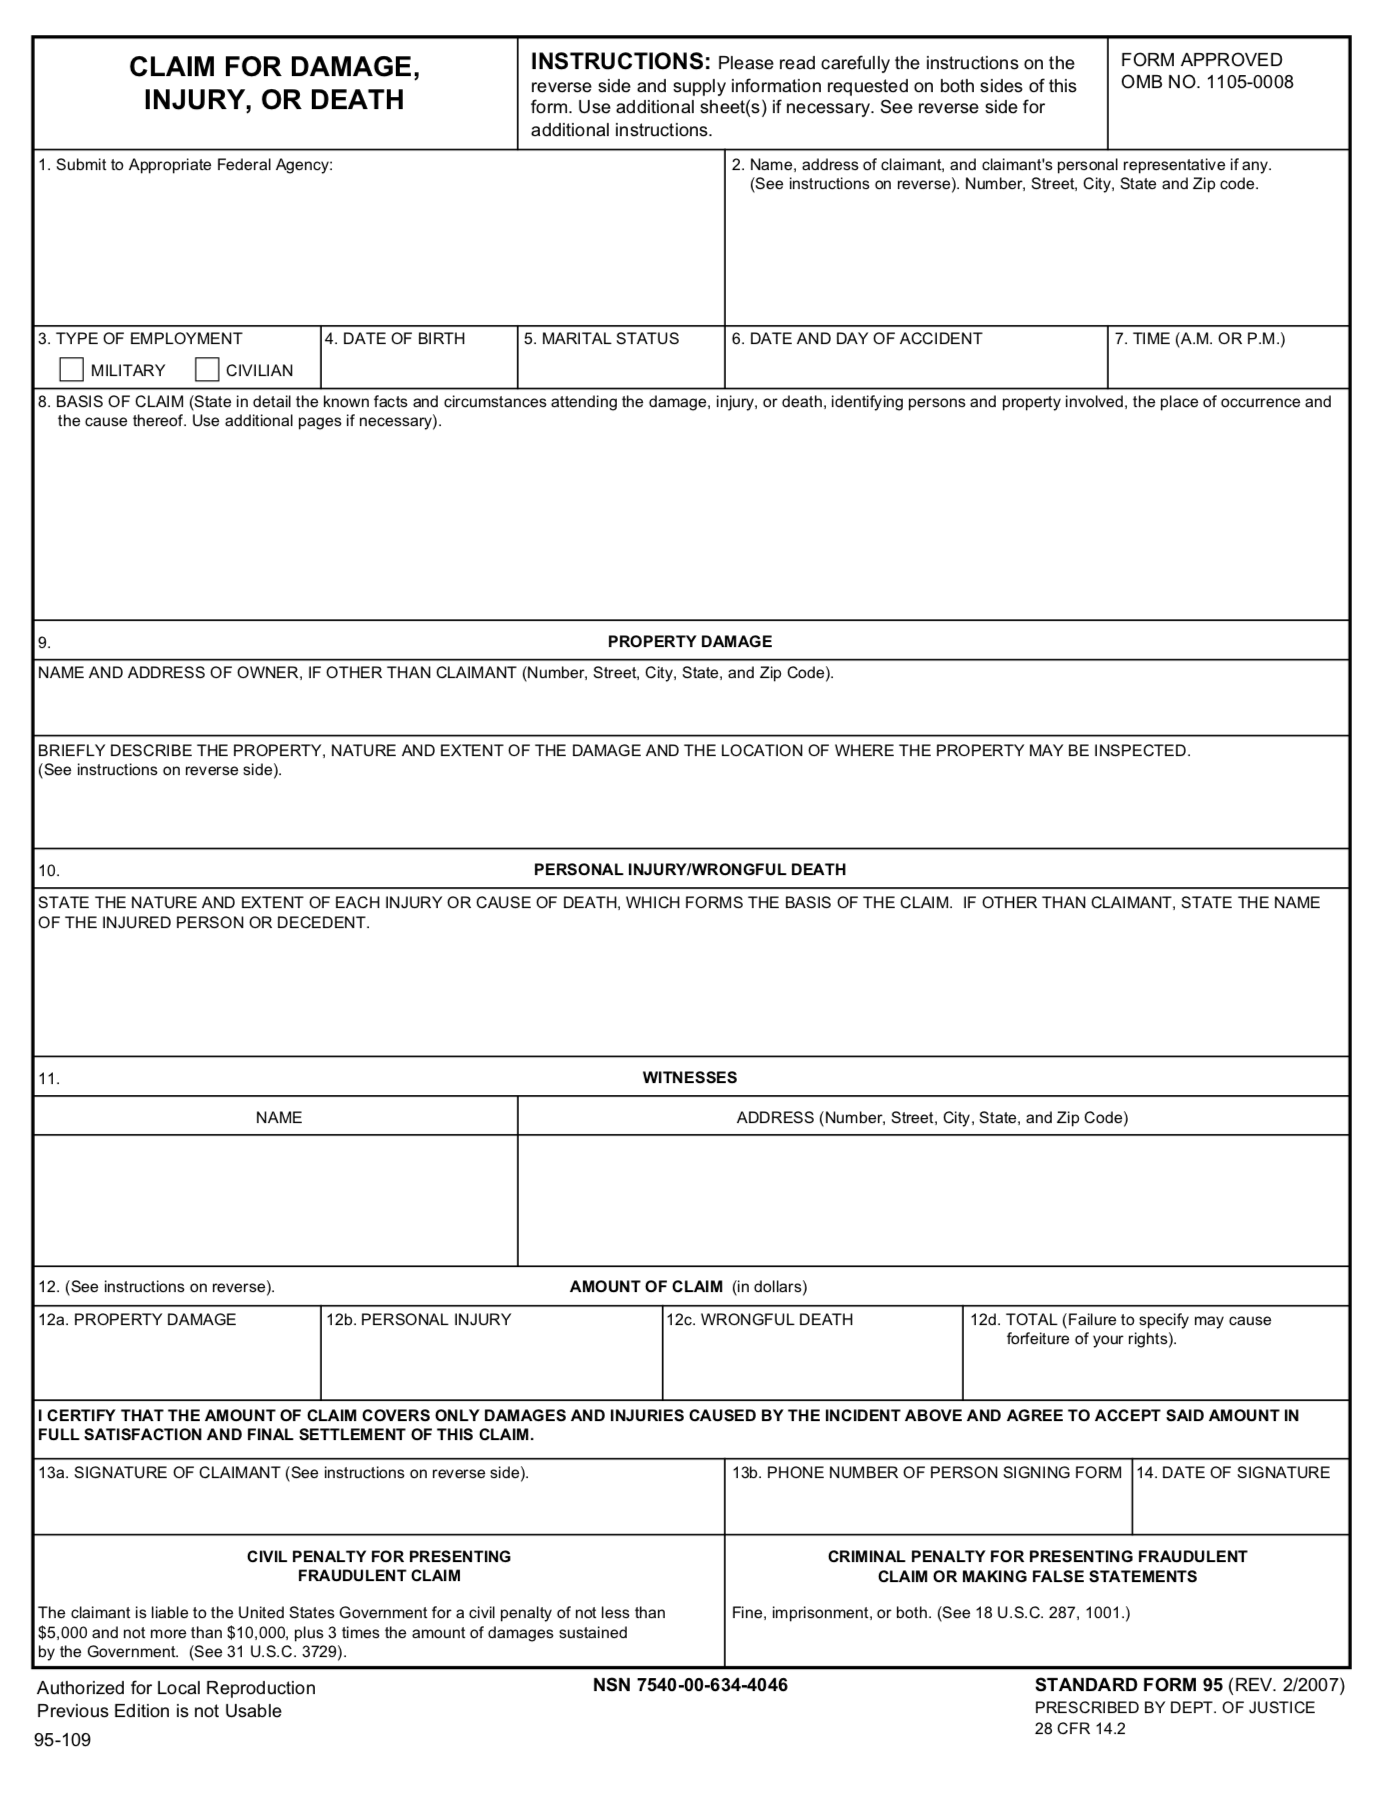 claim form 95  Tort Claim Form - FTCA Federal Tort Claims Act SF-95 ..